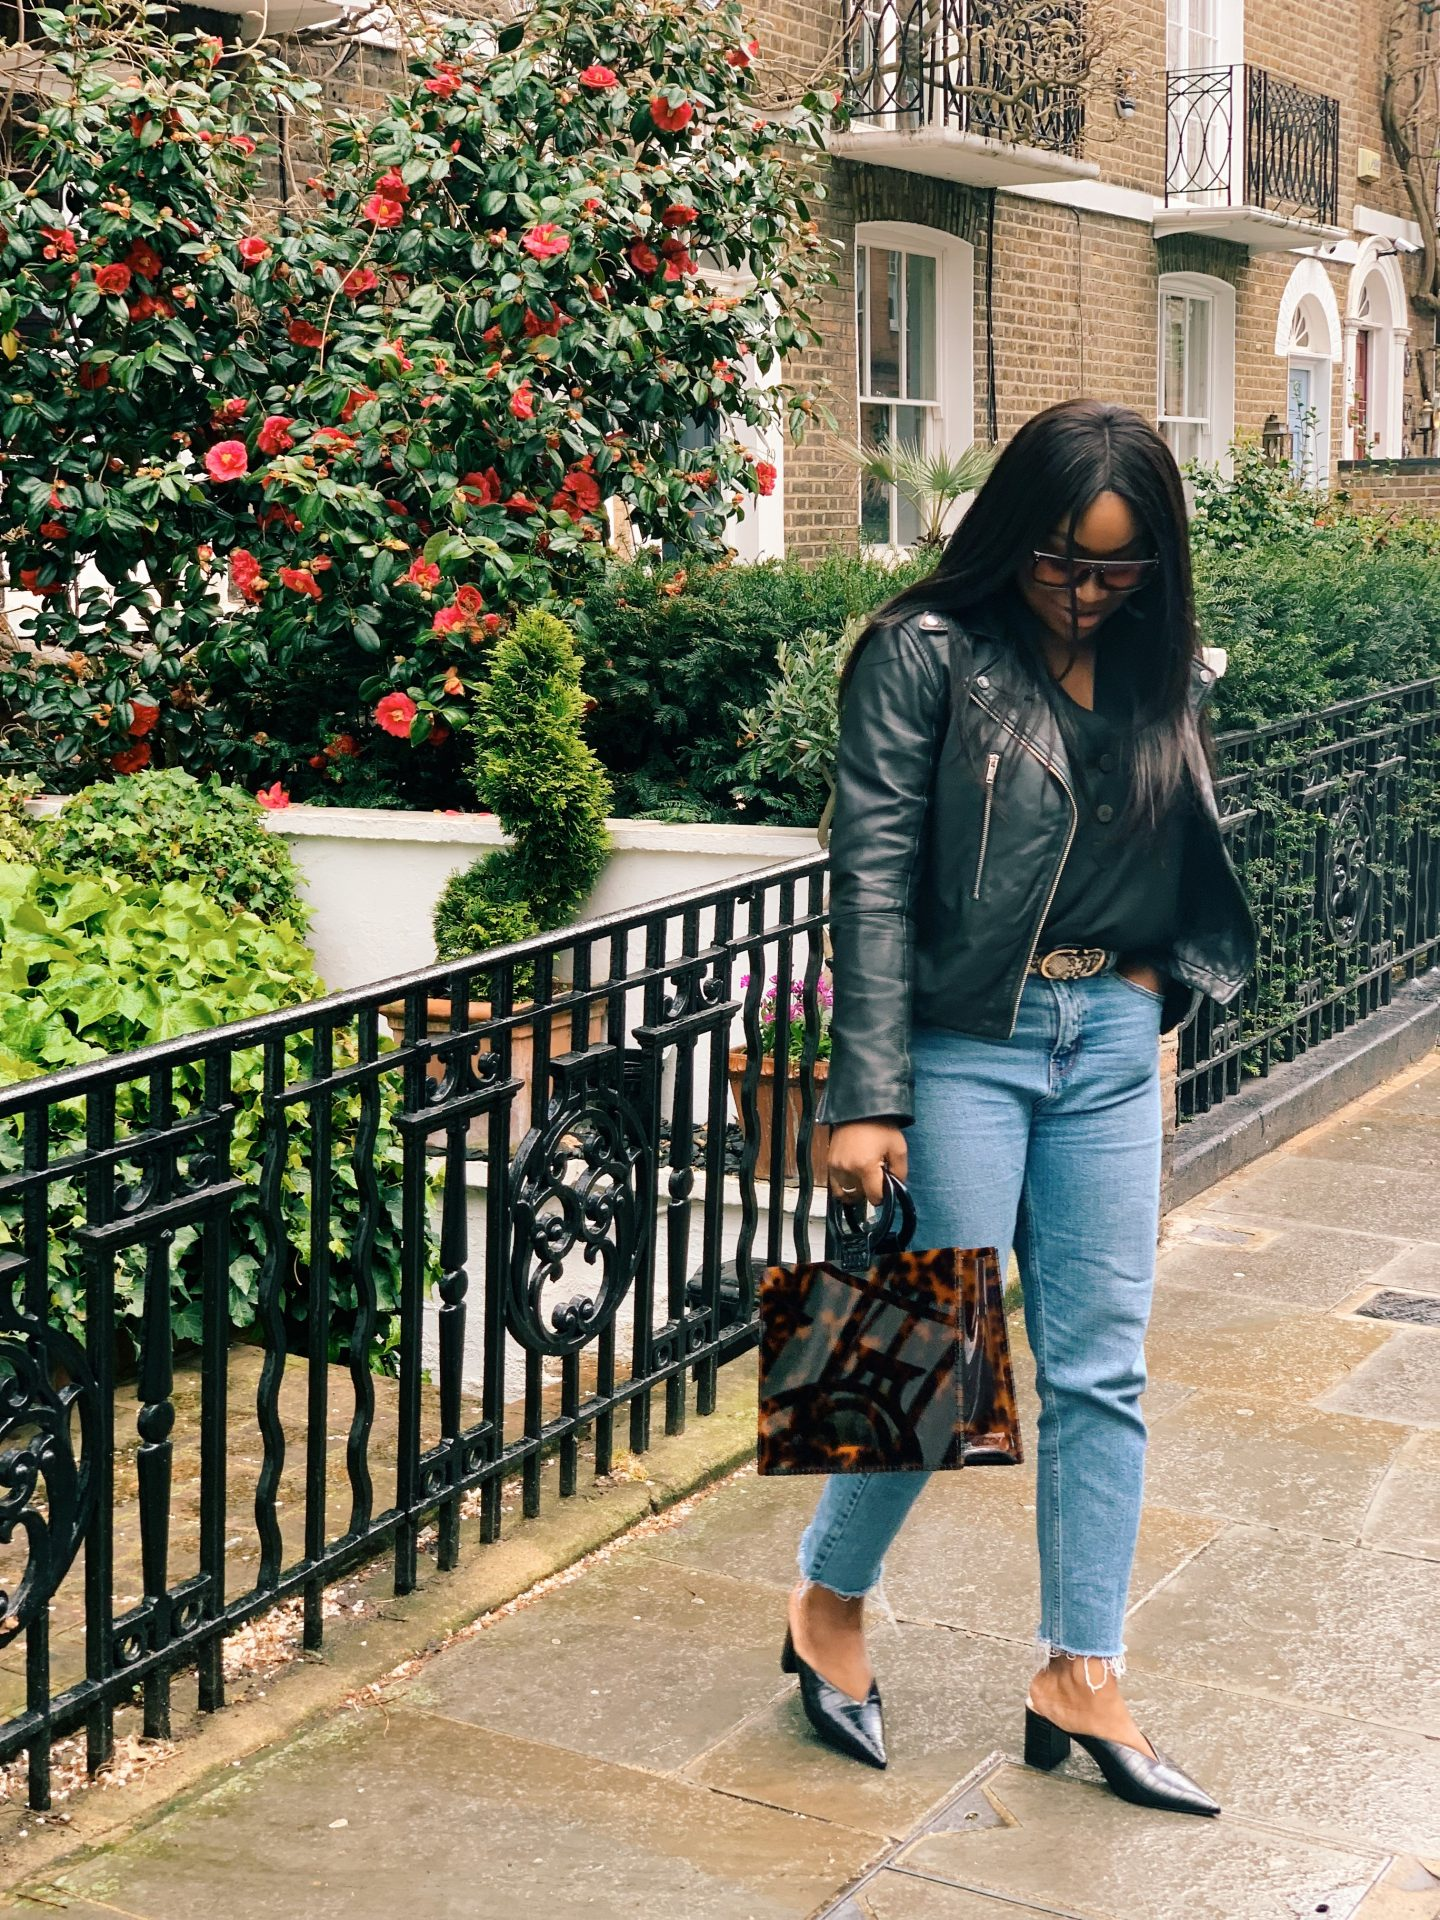 Mum a Porter Ayesha Amato April Showers What to Wear Now Acrylic bag Topshop